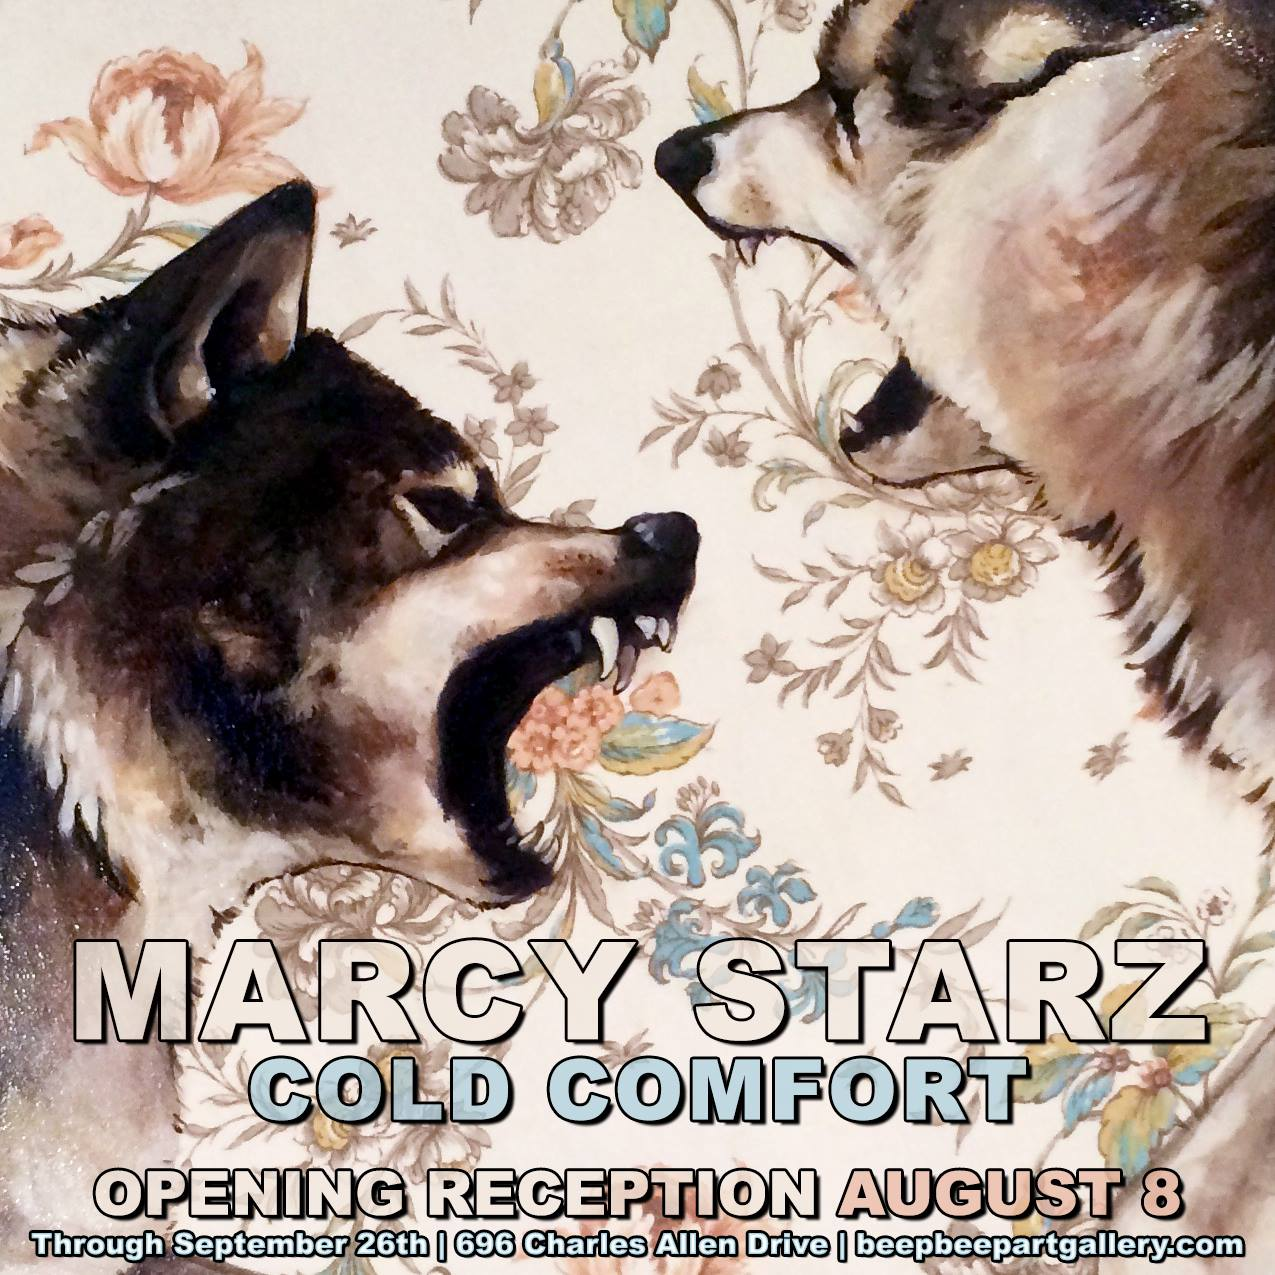 Marcy Starz' first solo exhibition at Beep Beep Gallery opens this Saturday night.